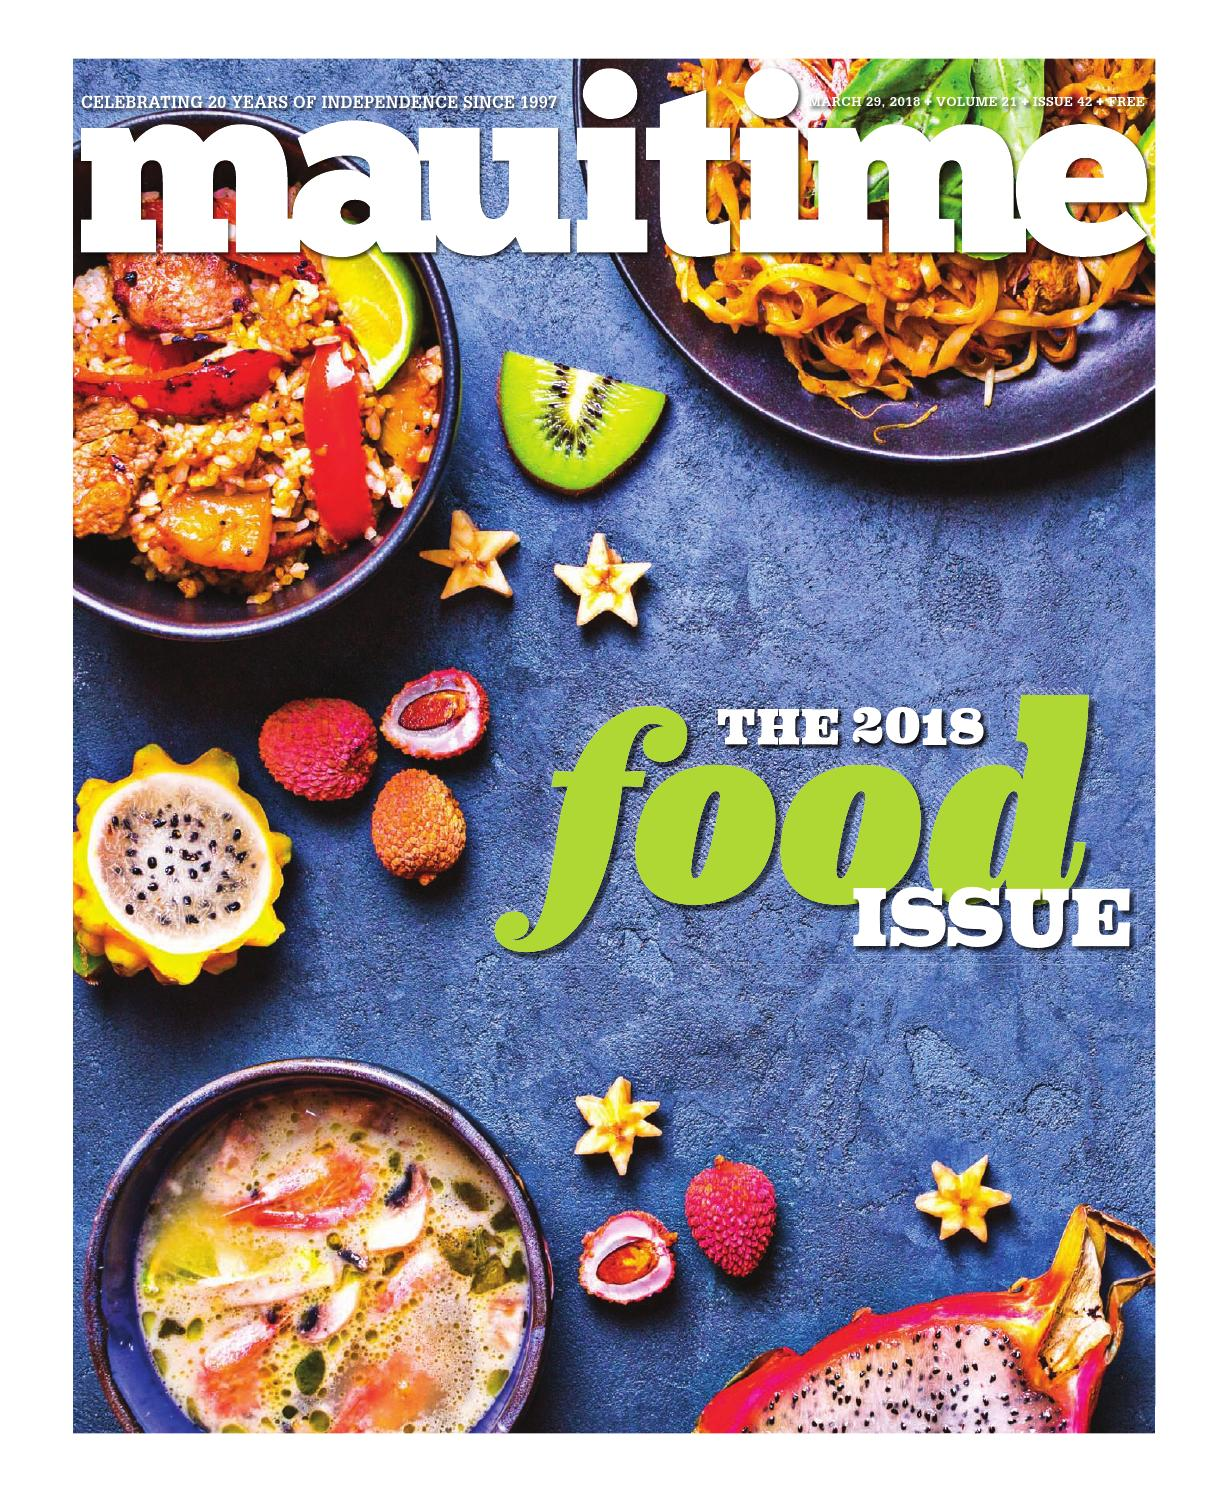 21 42 The Food Issue 2018 March 29 2018 Volume 21 Issue 42 Mauitime By Maui Time Issuu